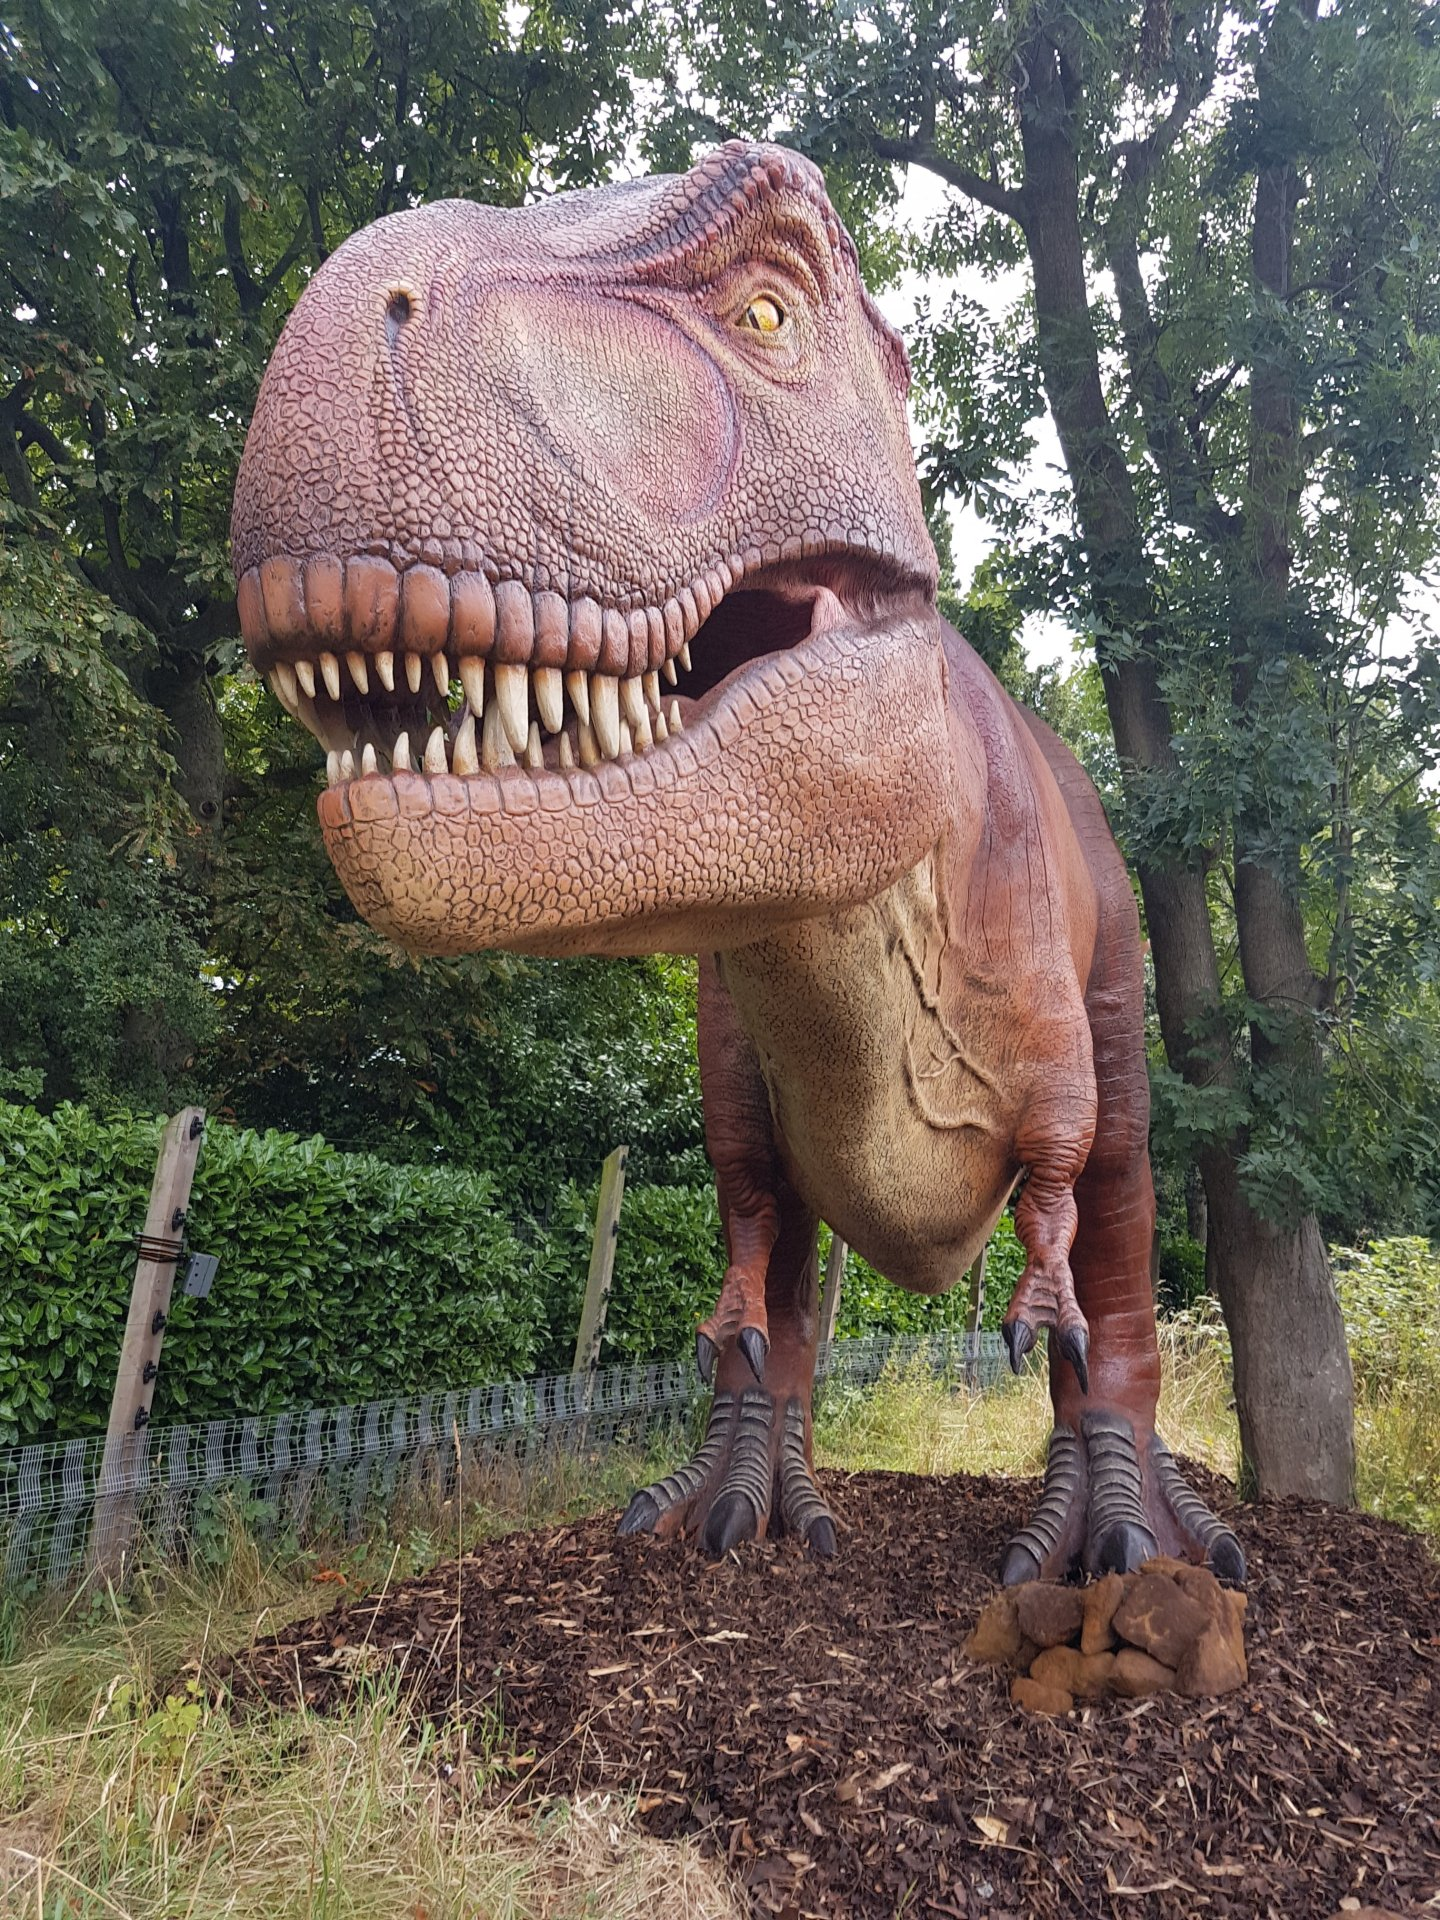 Zoorassic Park – London Zoo